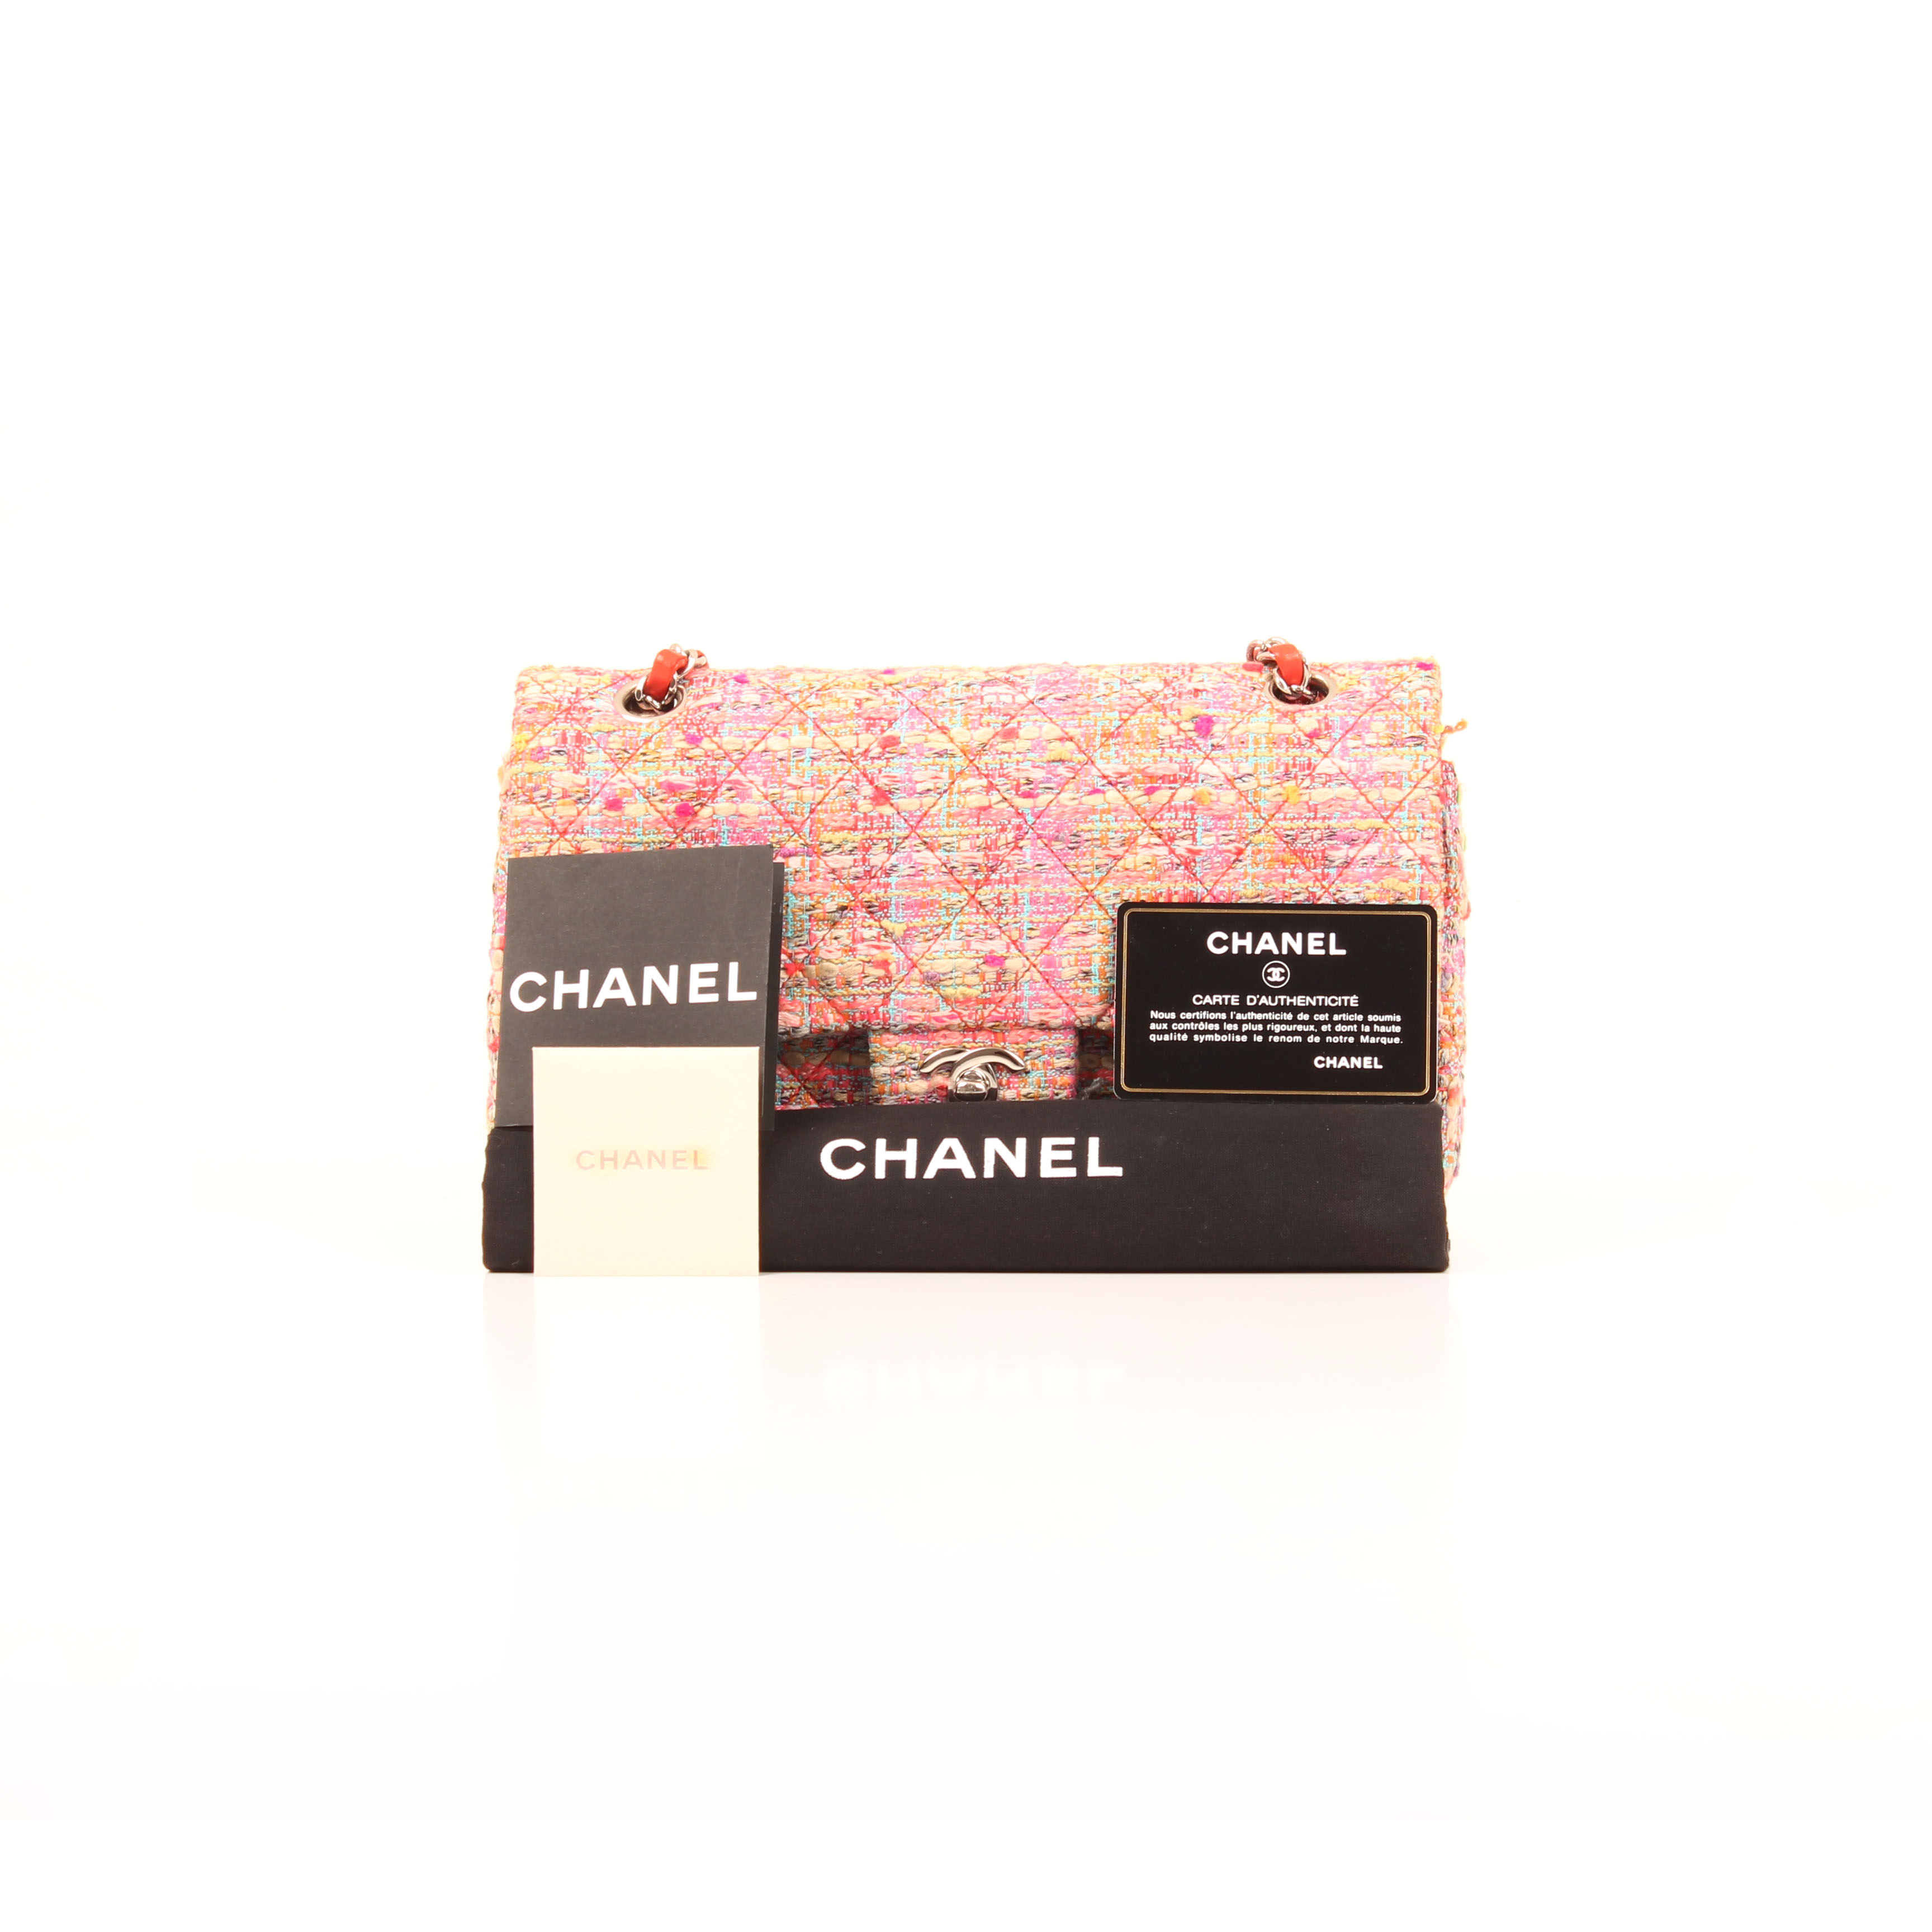 Front image from chanel timeless tweed pink multicolor neon double flap bag with dustbag and card